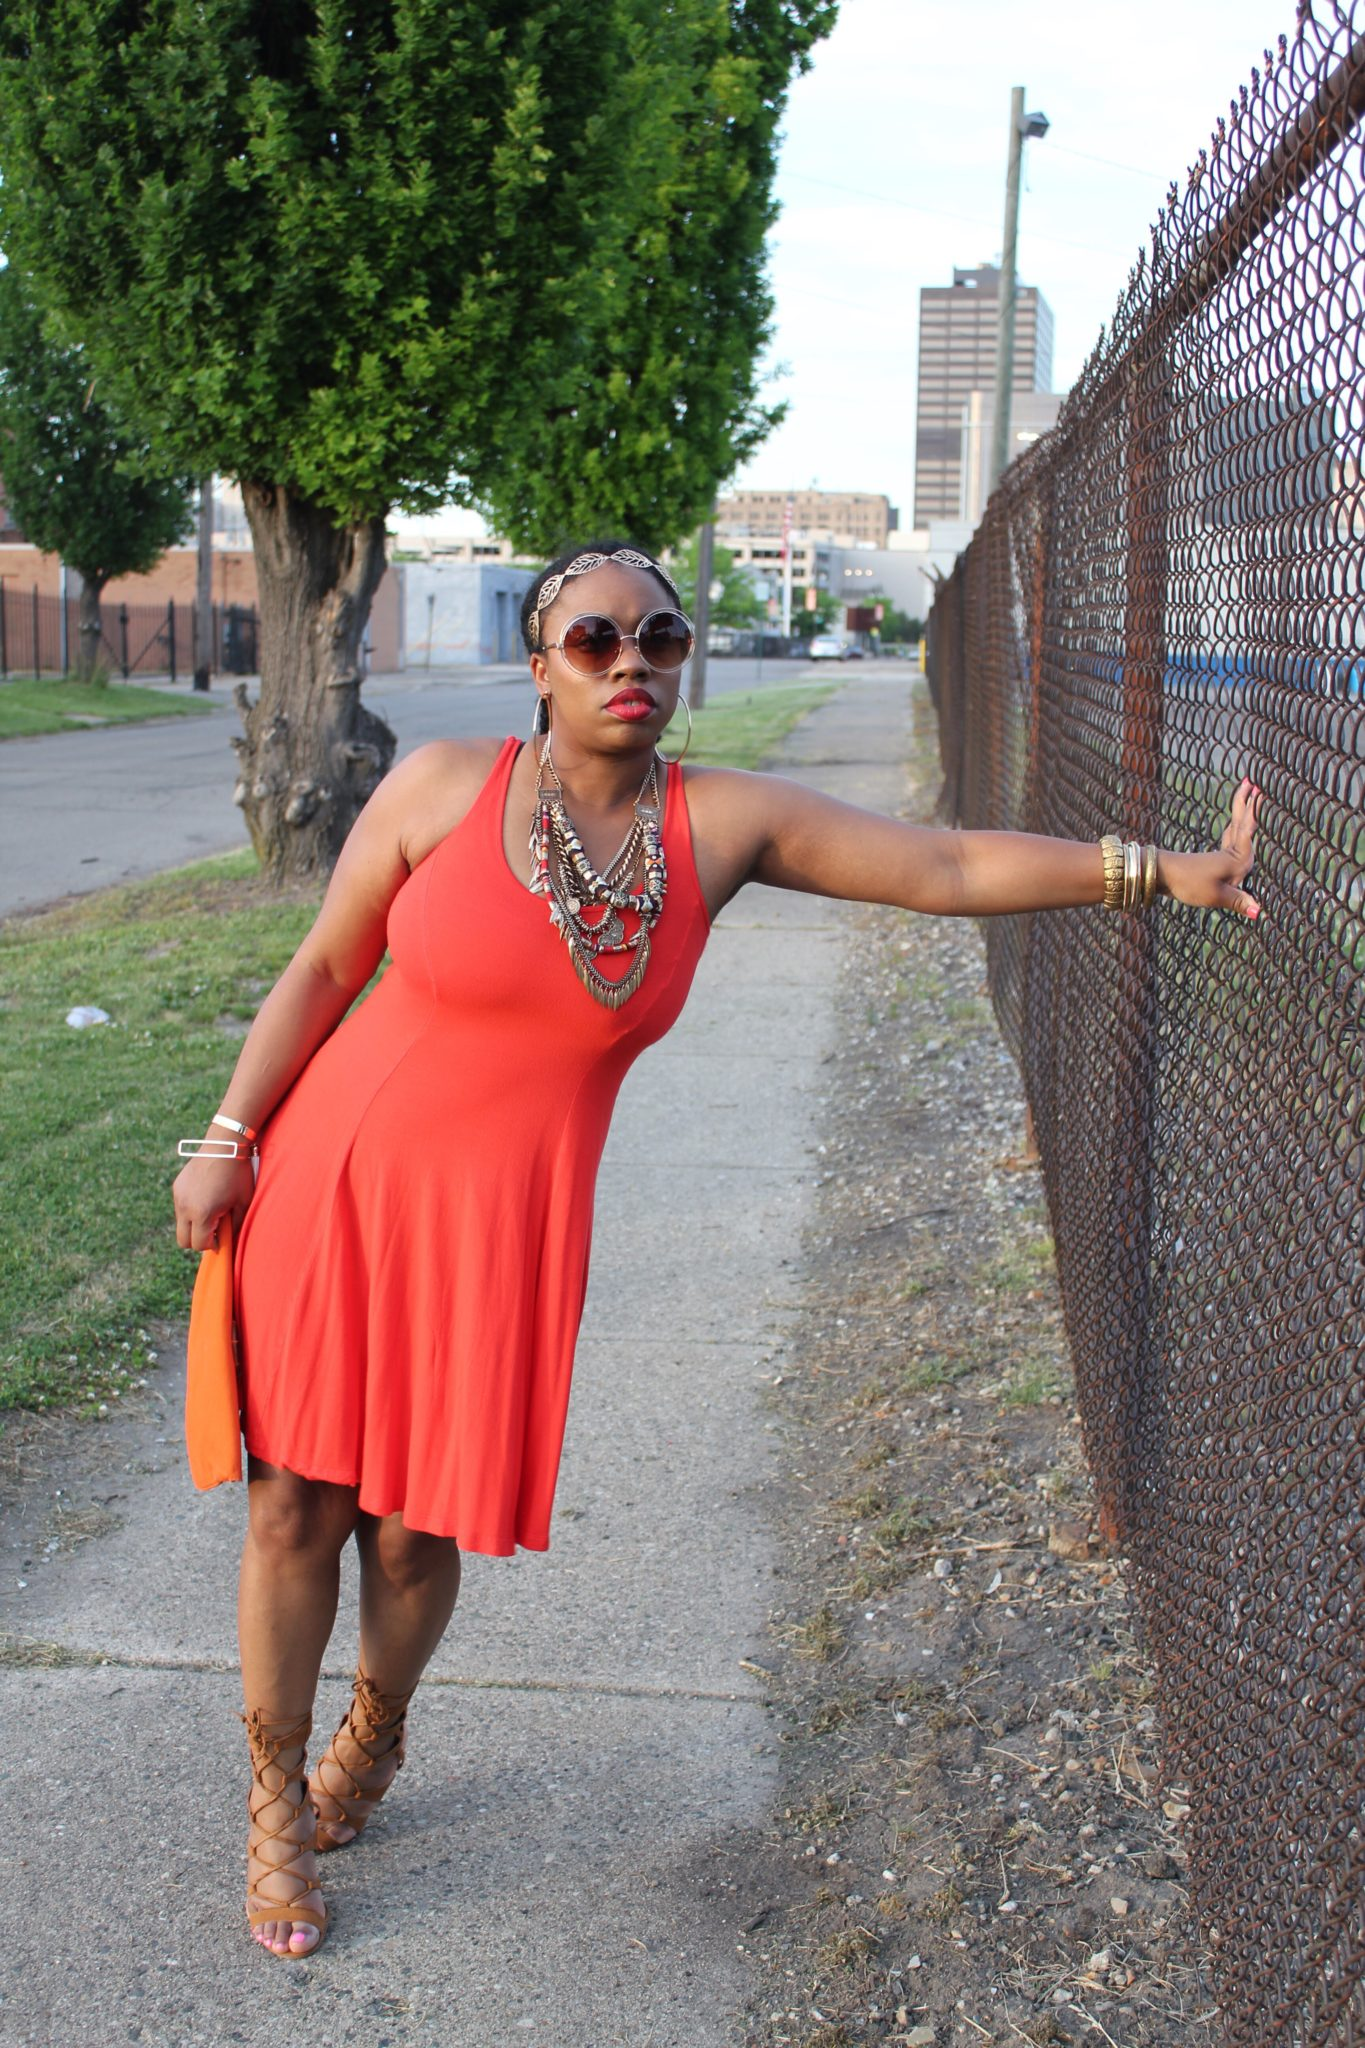 publish_snapshot-12 Friday Comfort: (Style How To)Aldo Shoes Fashion how to Layered Chains Old Navy OOTD Purple Love shopping Urban Og